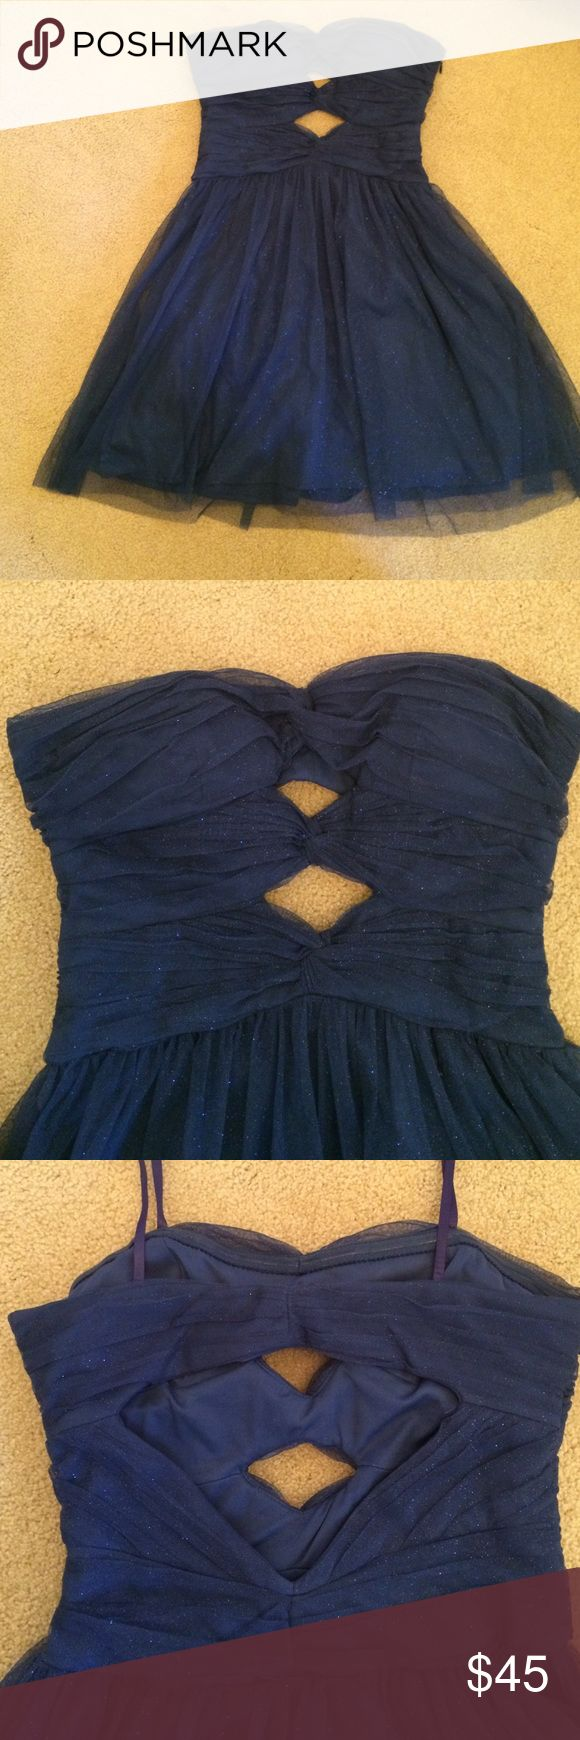 Homecoming dress. Silky material covered in sparkly tulle. Short, simple homecoming dress. Straps attached for hanging up. Hailey Logan Dresses Strapless